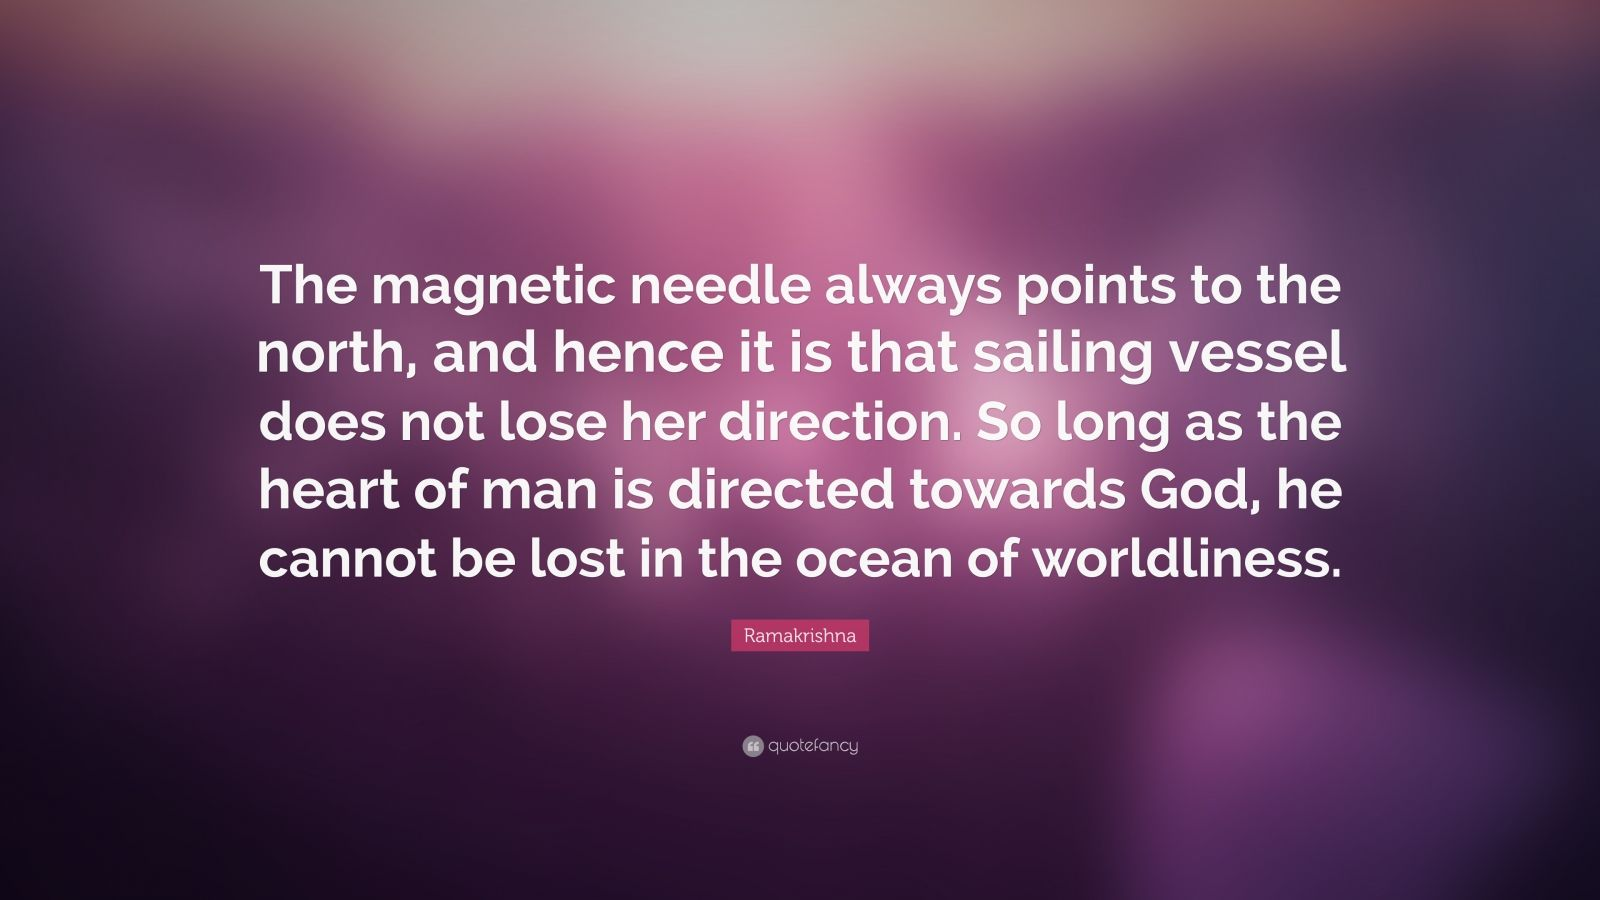 """Ramakrishna Quote: """"The magnetic needle always points to the north, and hence it is that sailing vessel does not lose her direction. So long as the heart of man is directed towards God, he cannot be lost in the ocean of worldliness."""""""